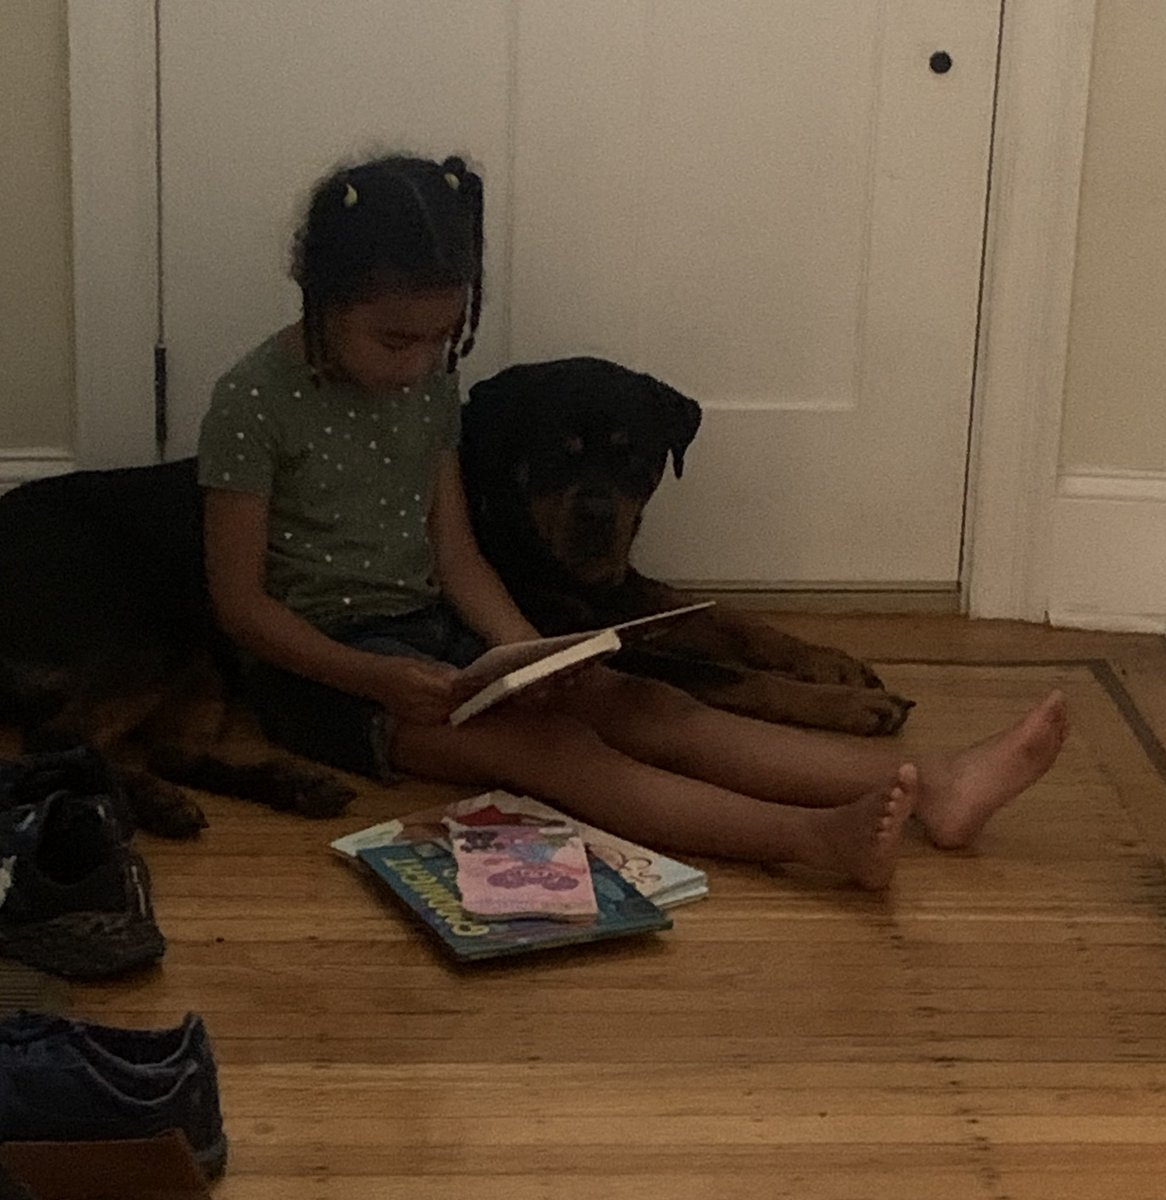 in case you need a smile, here's Simone reading to Coco: https://t.co/HZ0DXx3vei